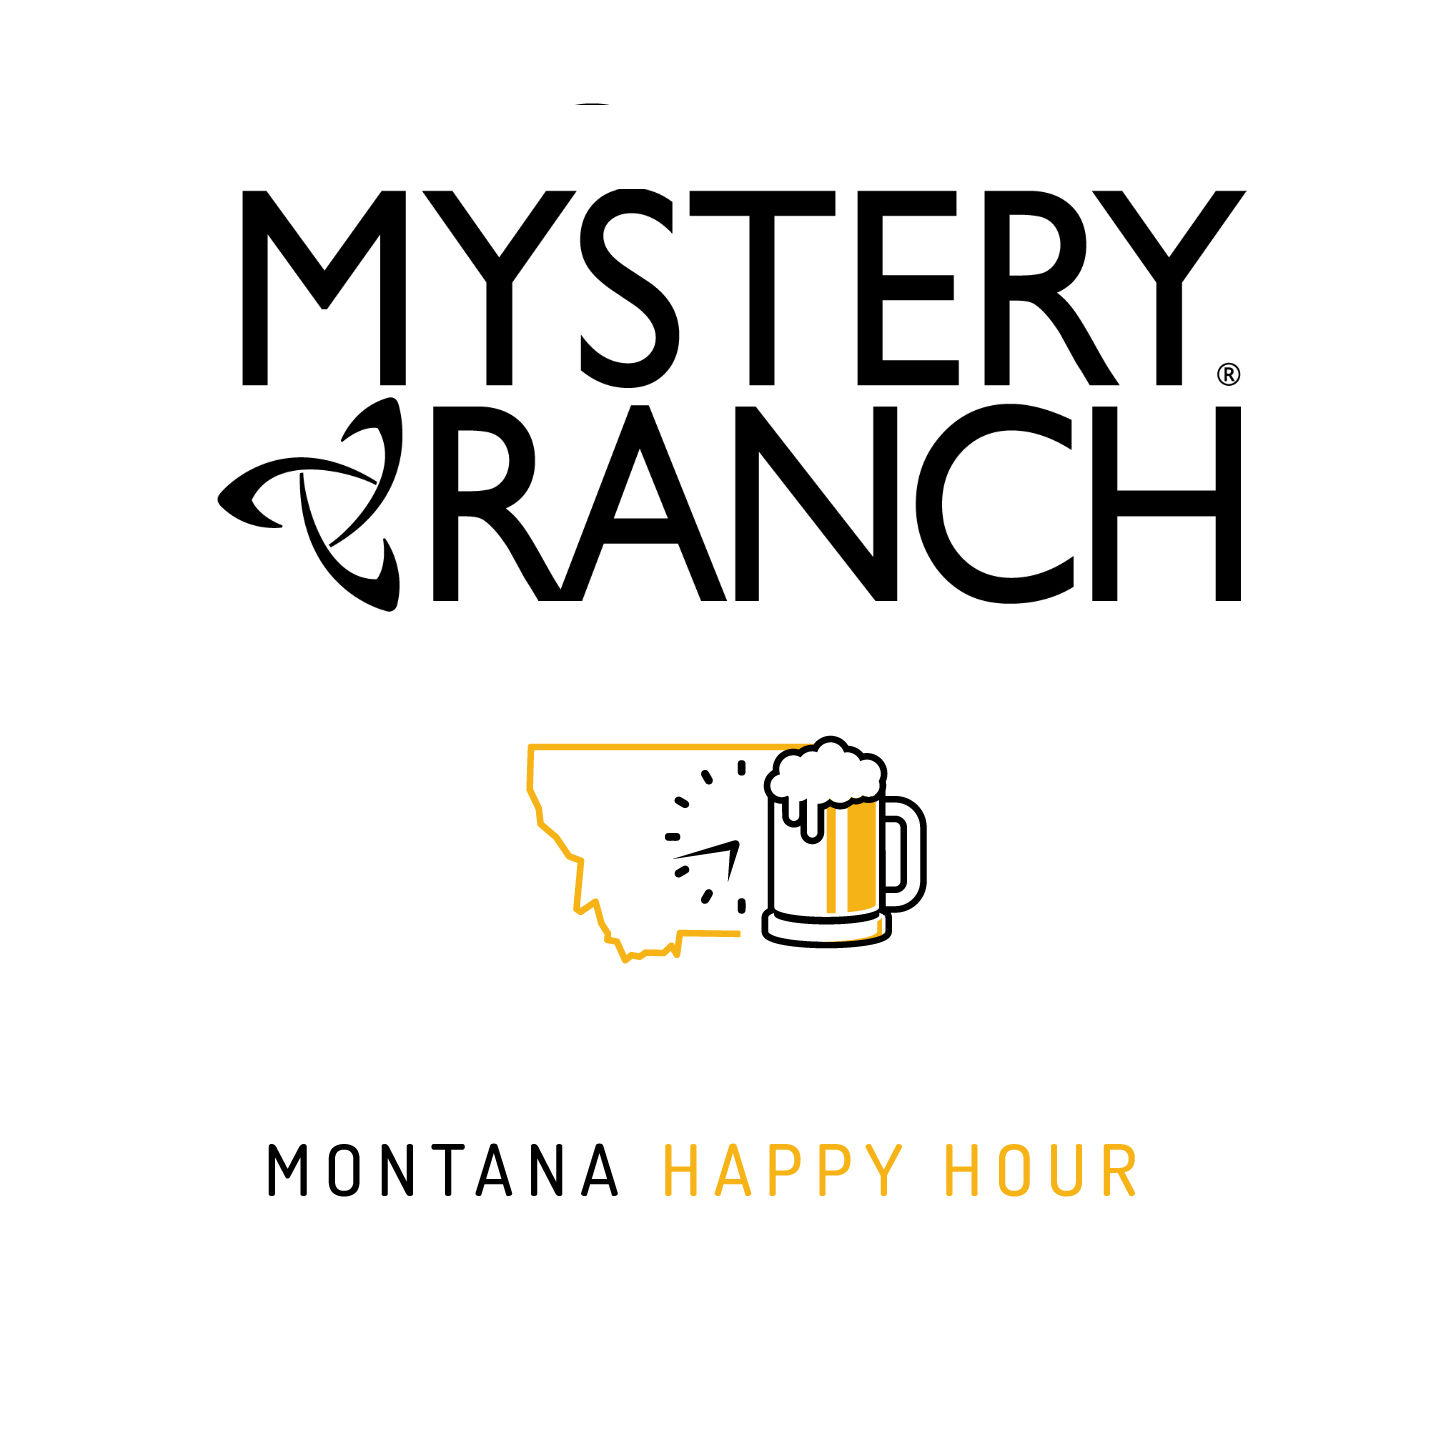 Mystery Ranch Backpack Contest